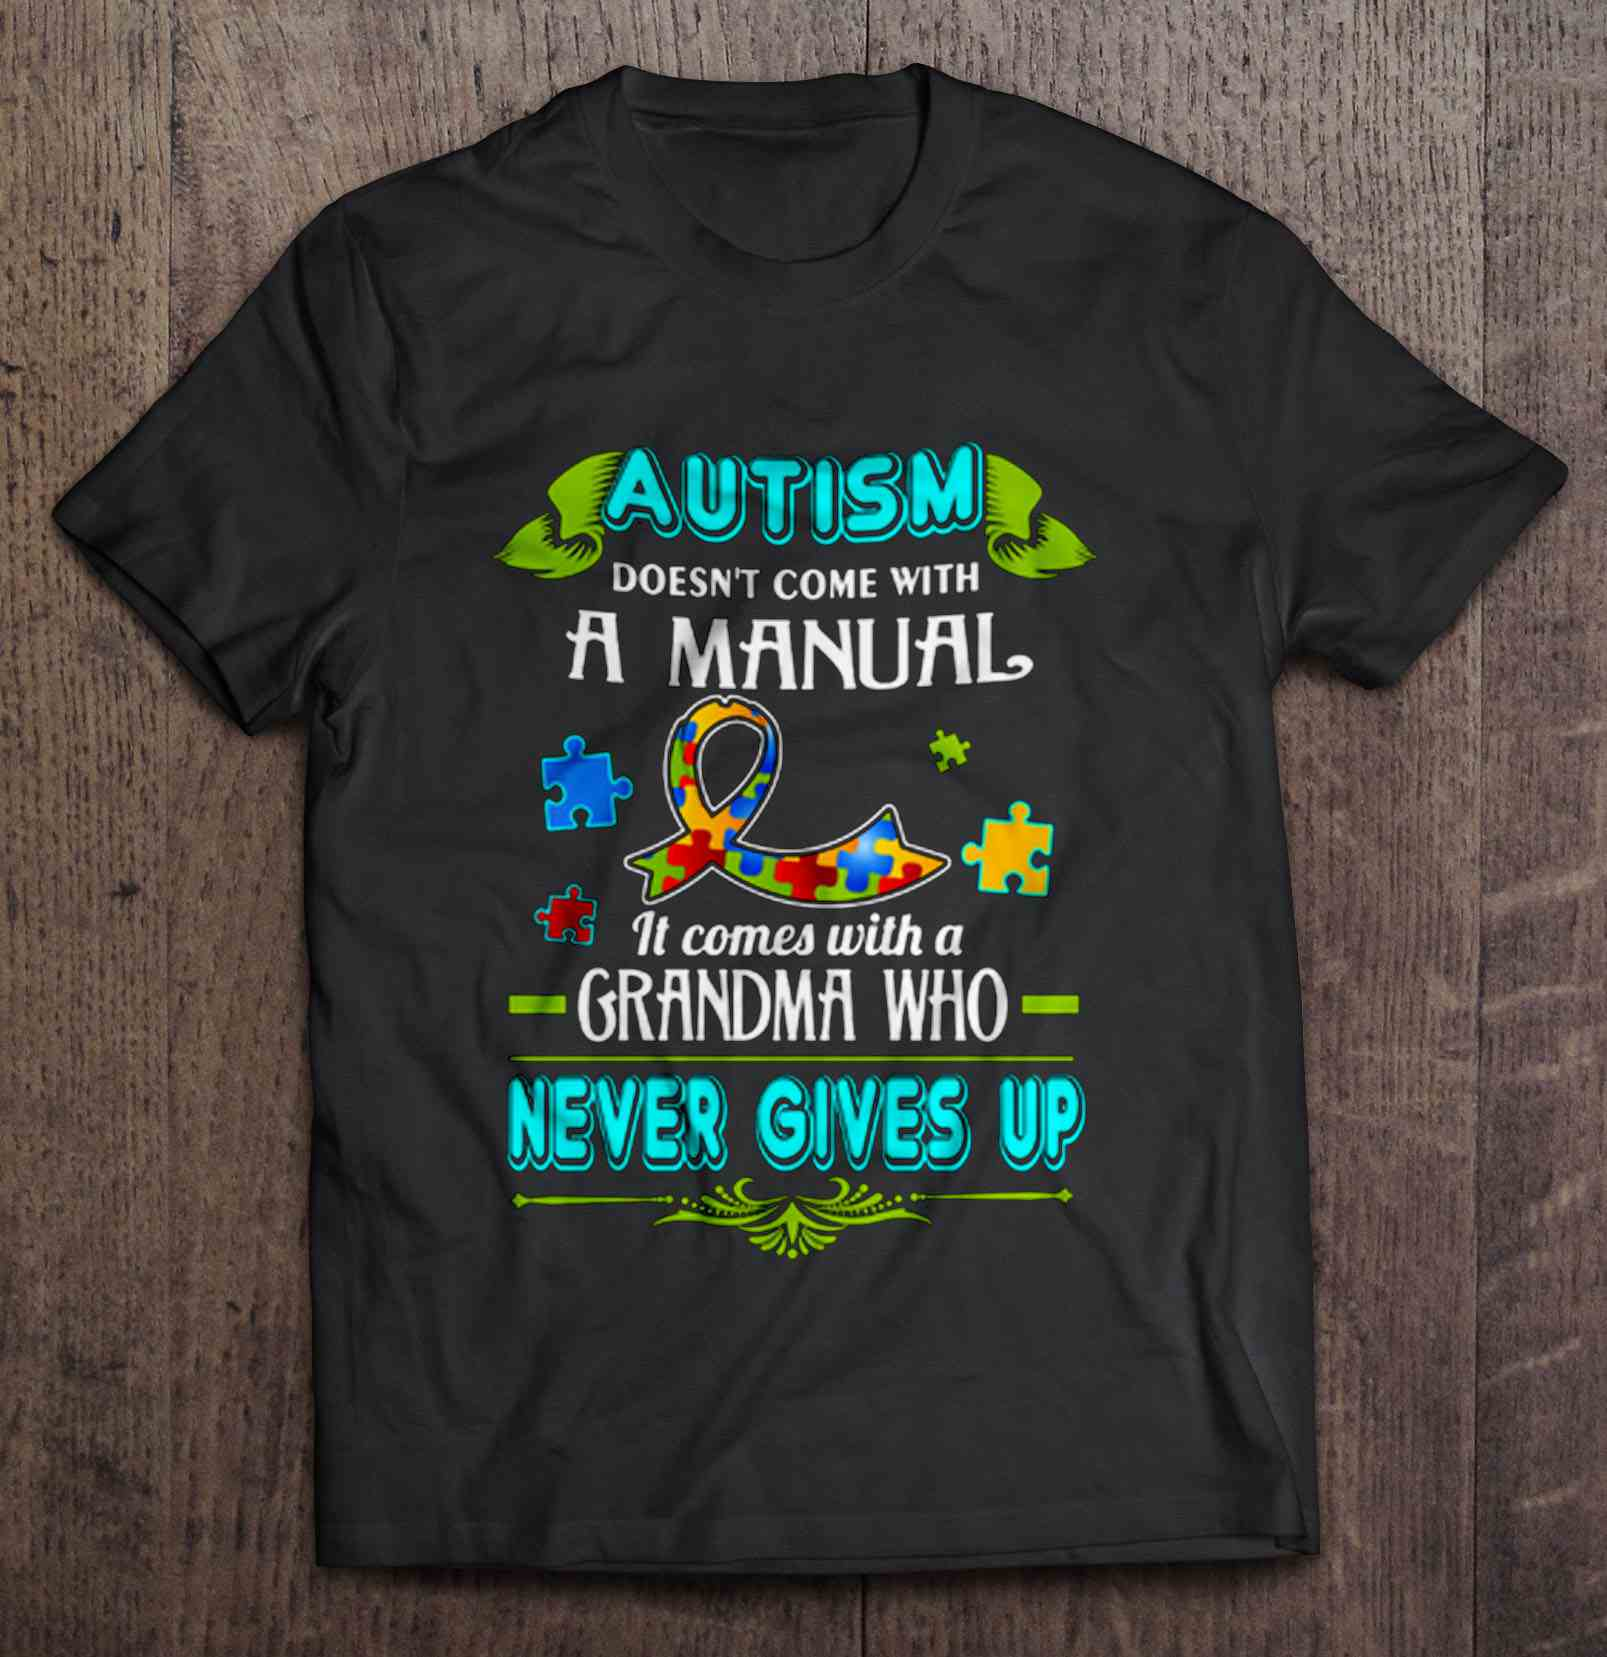 Autism Doesn'T Come With A Manual It Comes With A Grandma Who Never Gives Up T-Shirts image